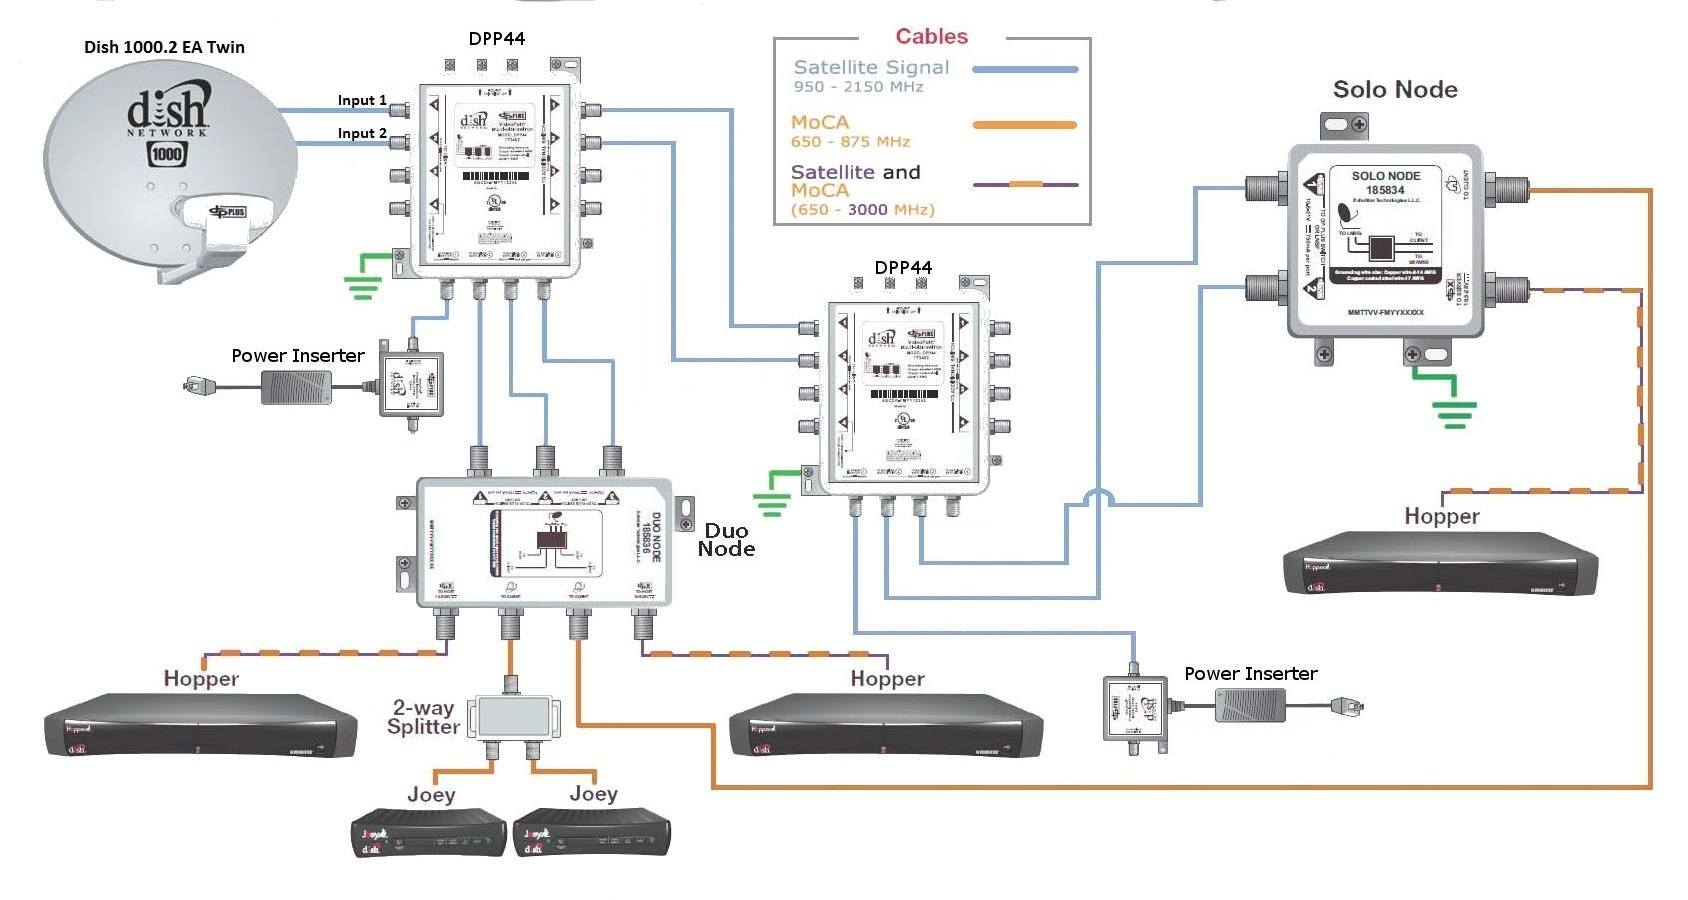 hopper wiring diagram dish hopper wiring \u2022 wiring diagrams j dish pro plus wiring diagram at aneh.co